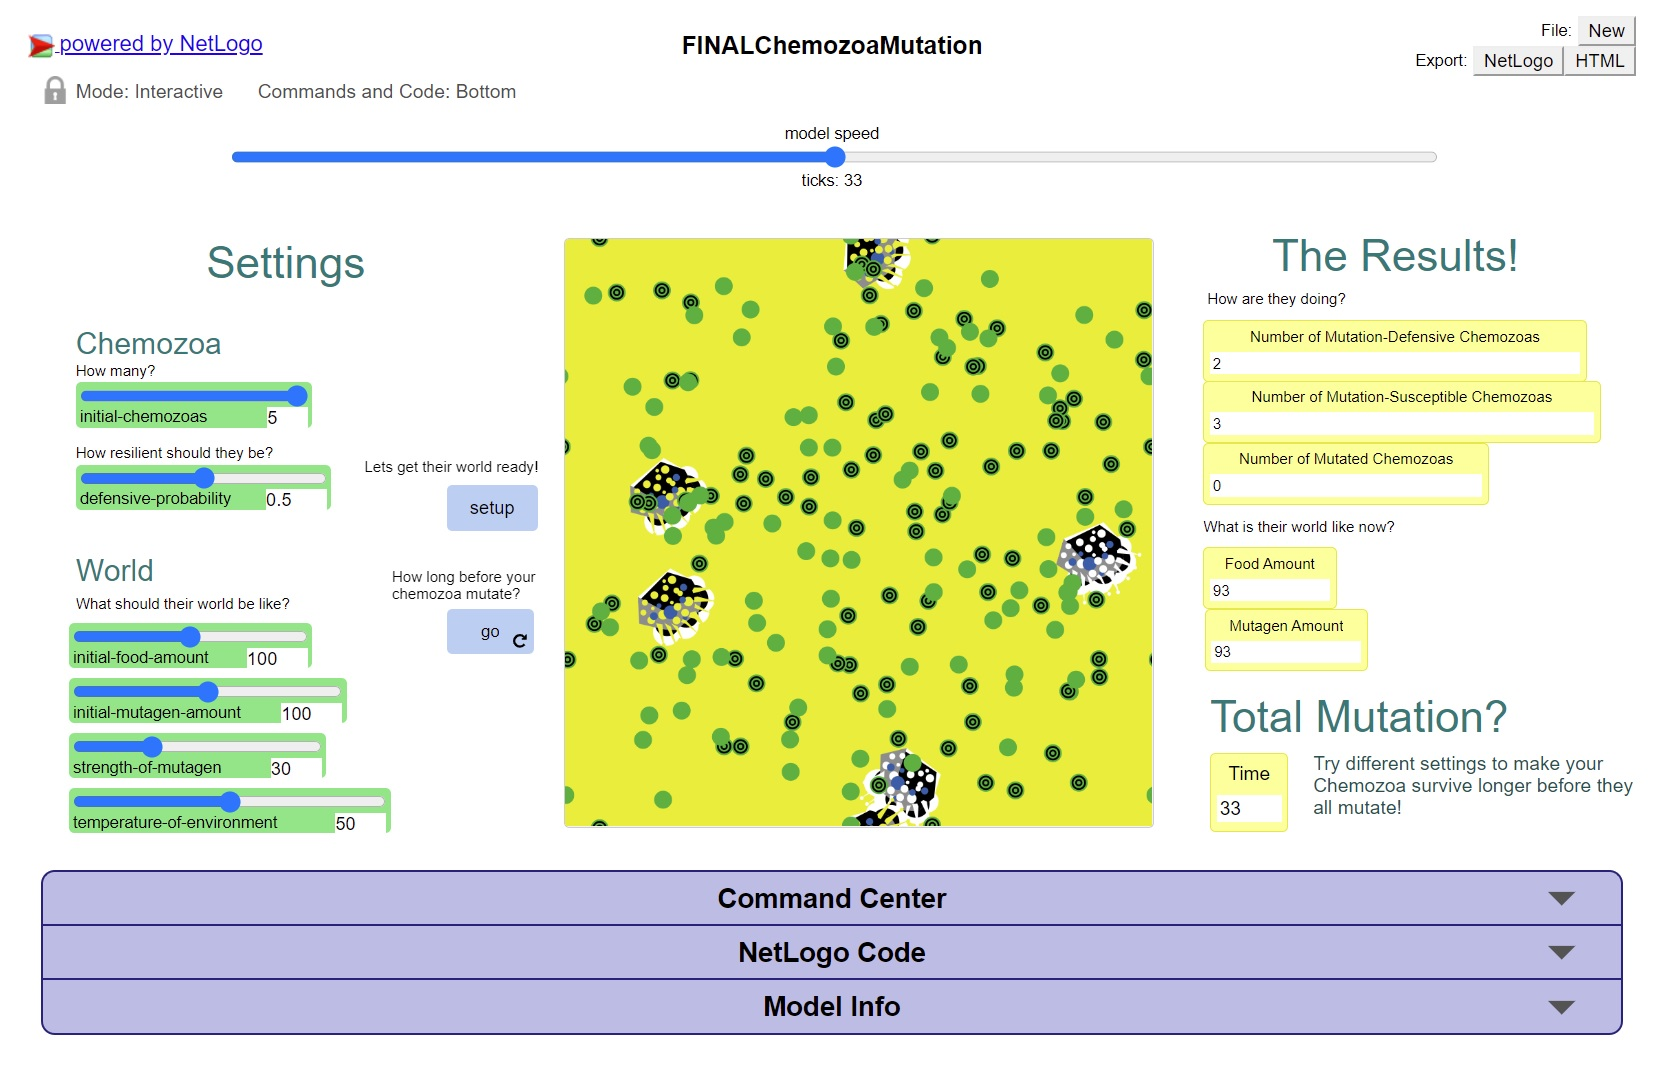 A scientific panel with green and yellow sections, with options to change the environment of Chemozoa. In the centre is a picture of the Chemozoa model in yellow and green.